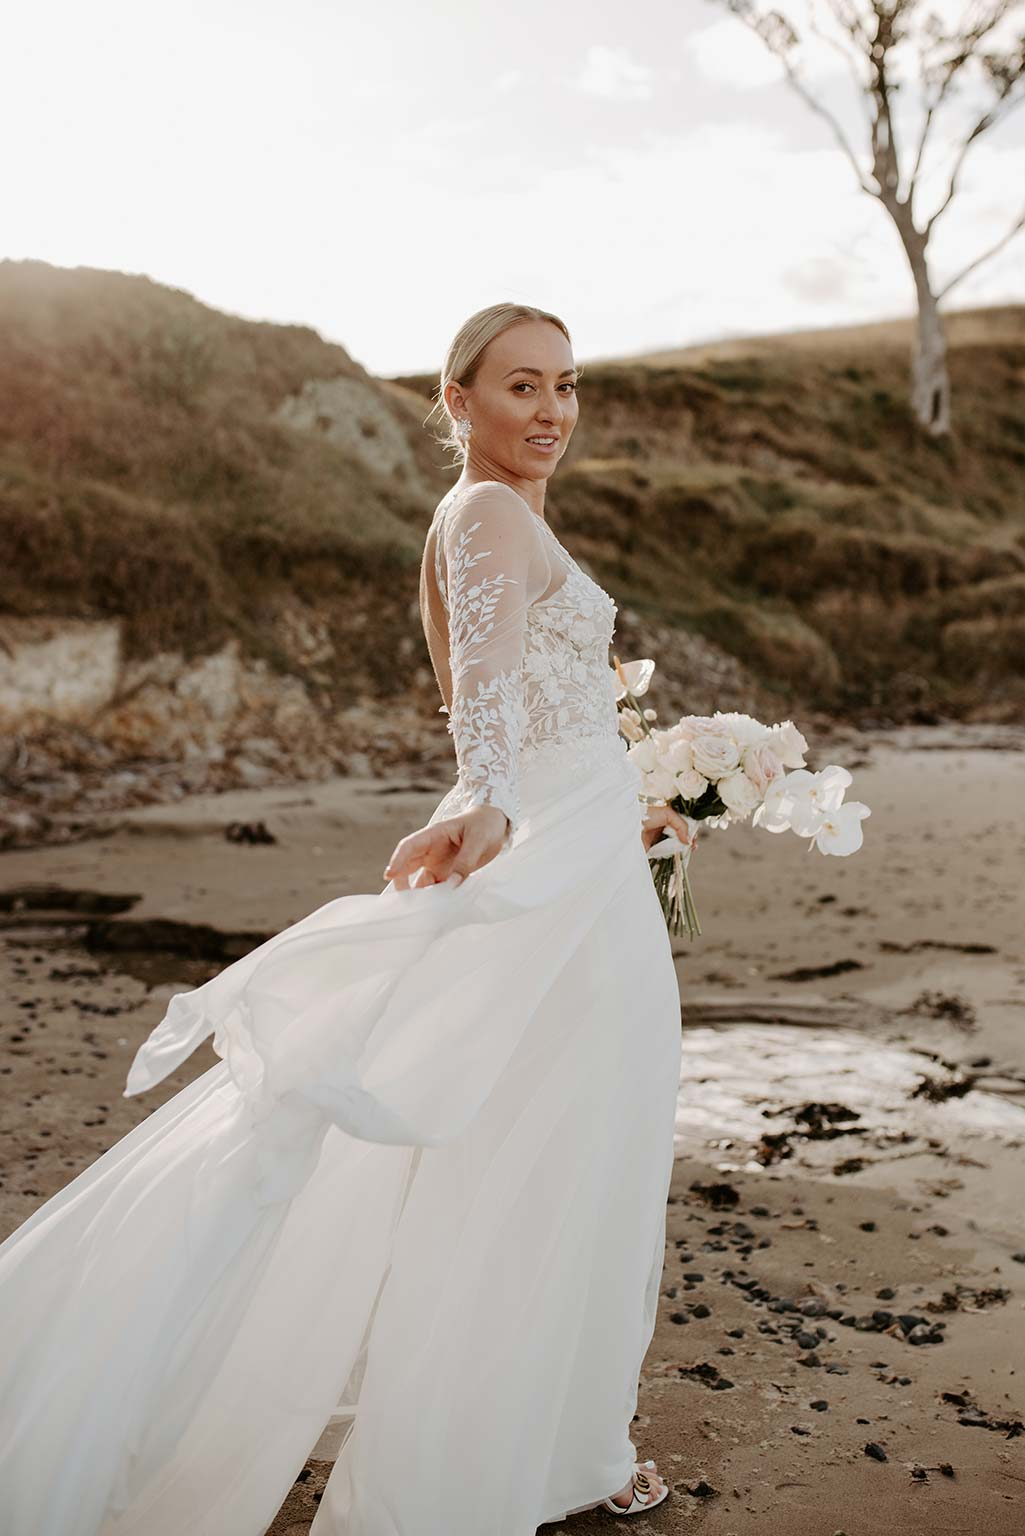 Vinka Design Features Real Weddings - bride poses next to the ocean - wearing a bespoke Makaira gown with silk-chiffon and tulle overskirt giving her a beautiful train which could be removed later on to reveal a floor length party dress